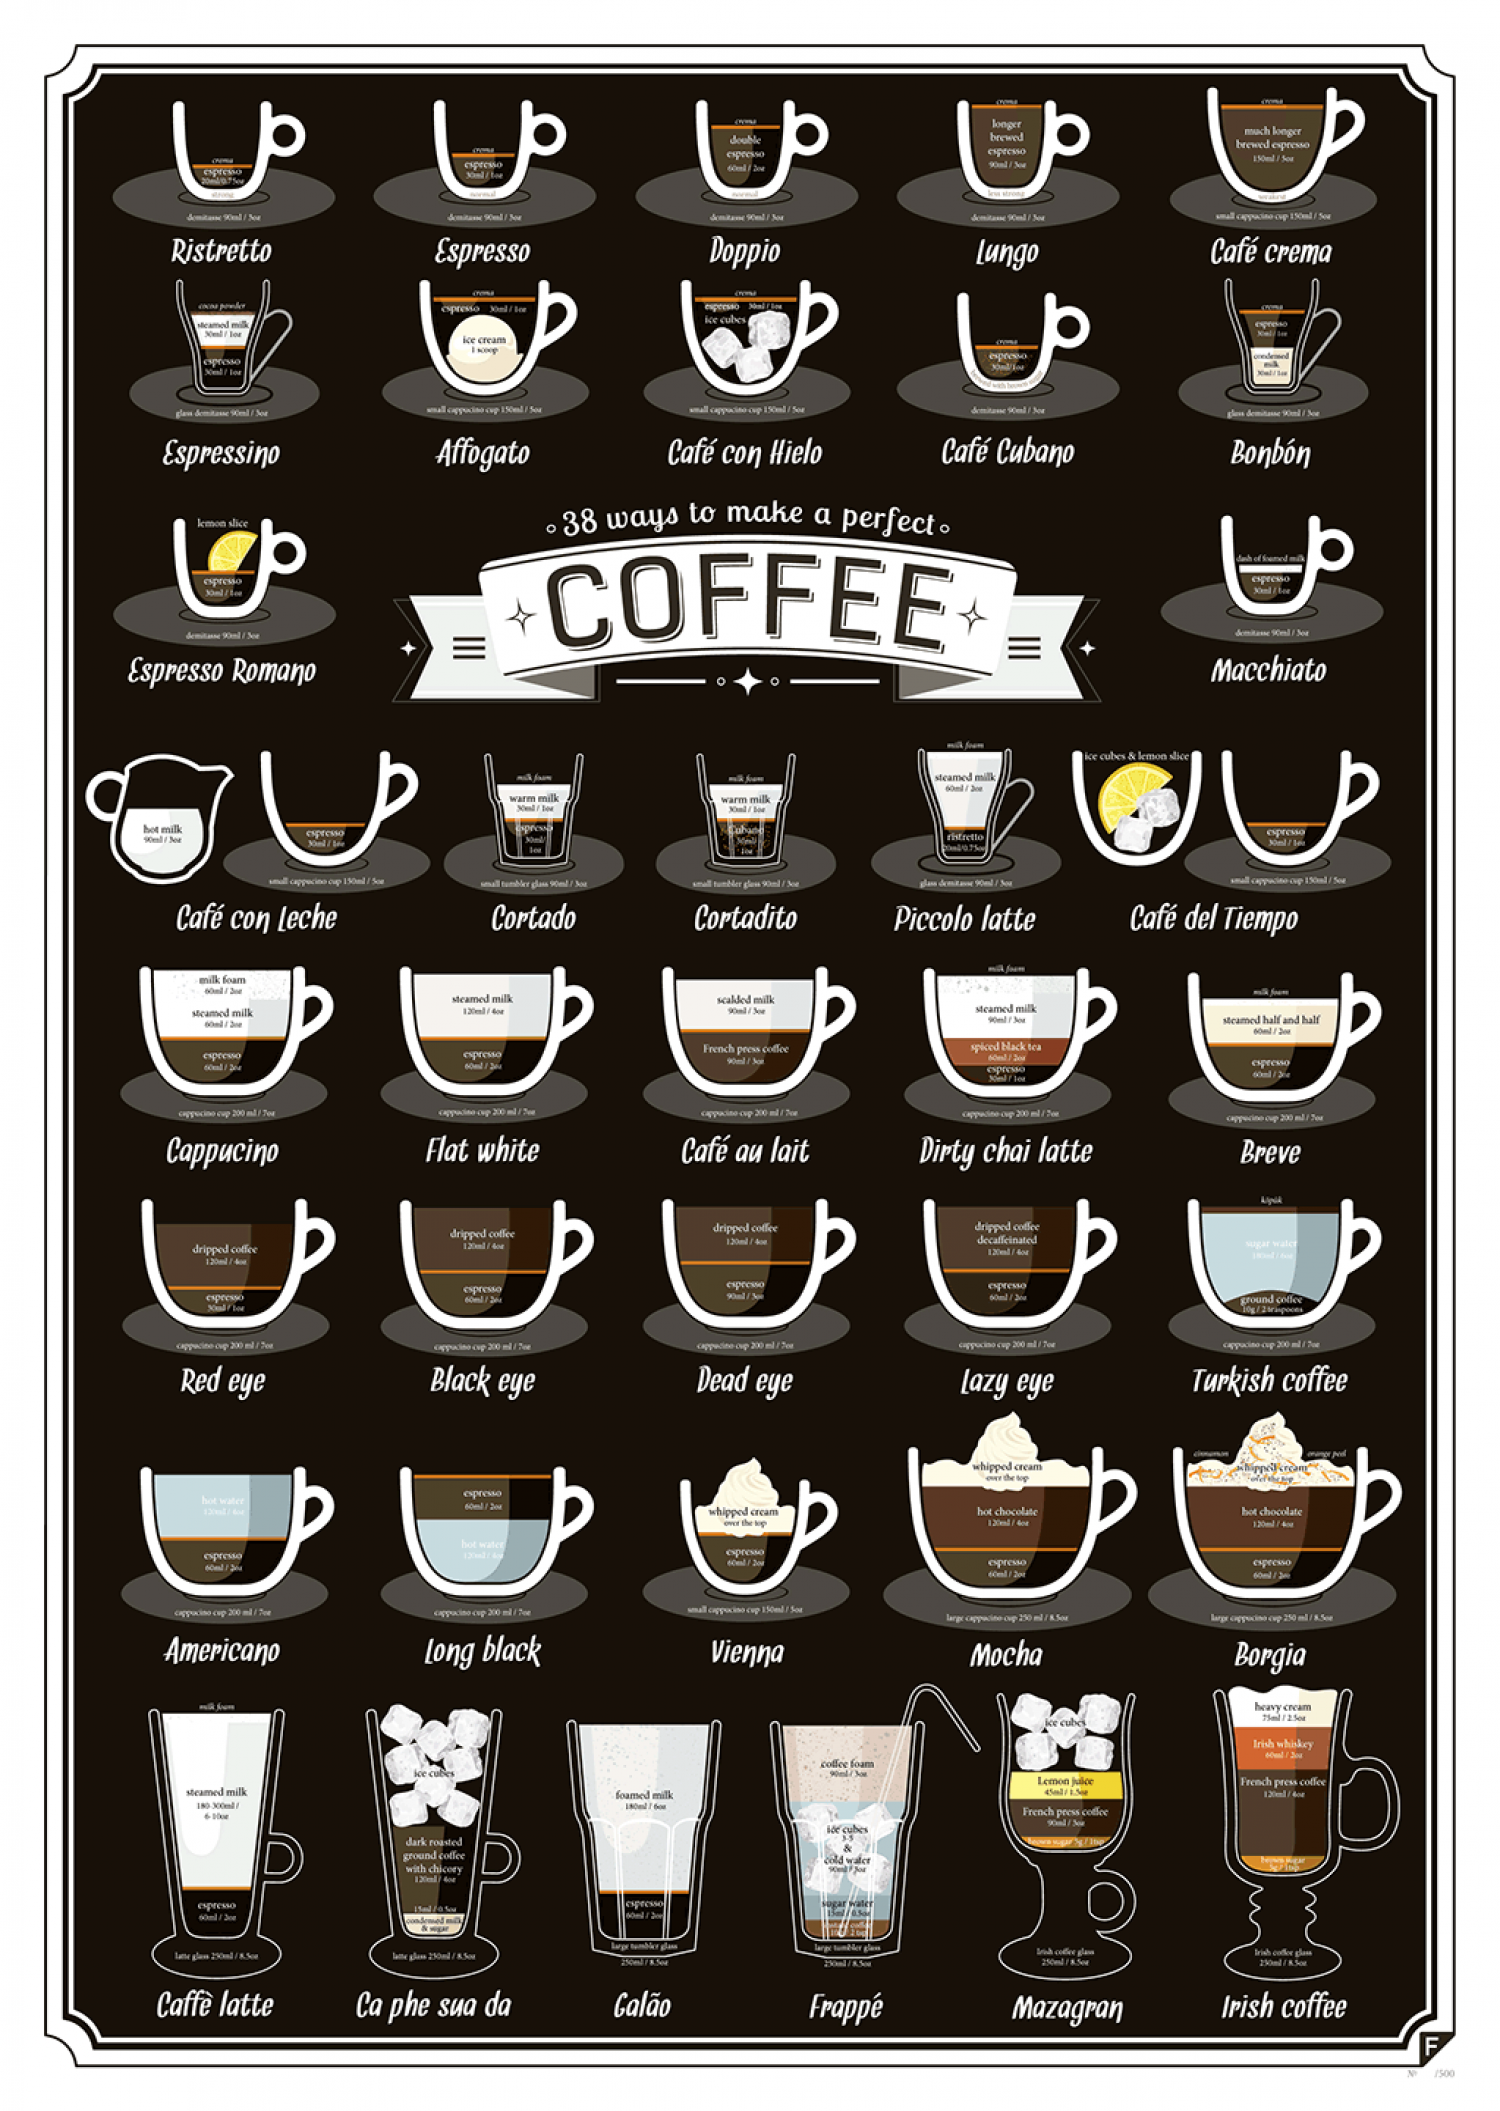 38 ways to make a perfect Coffee Infographic